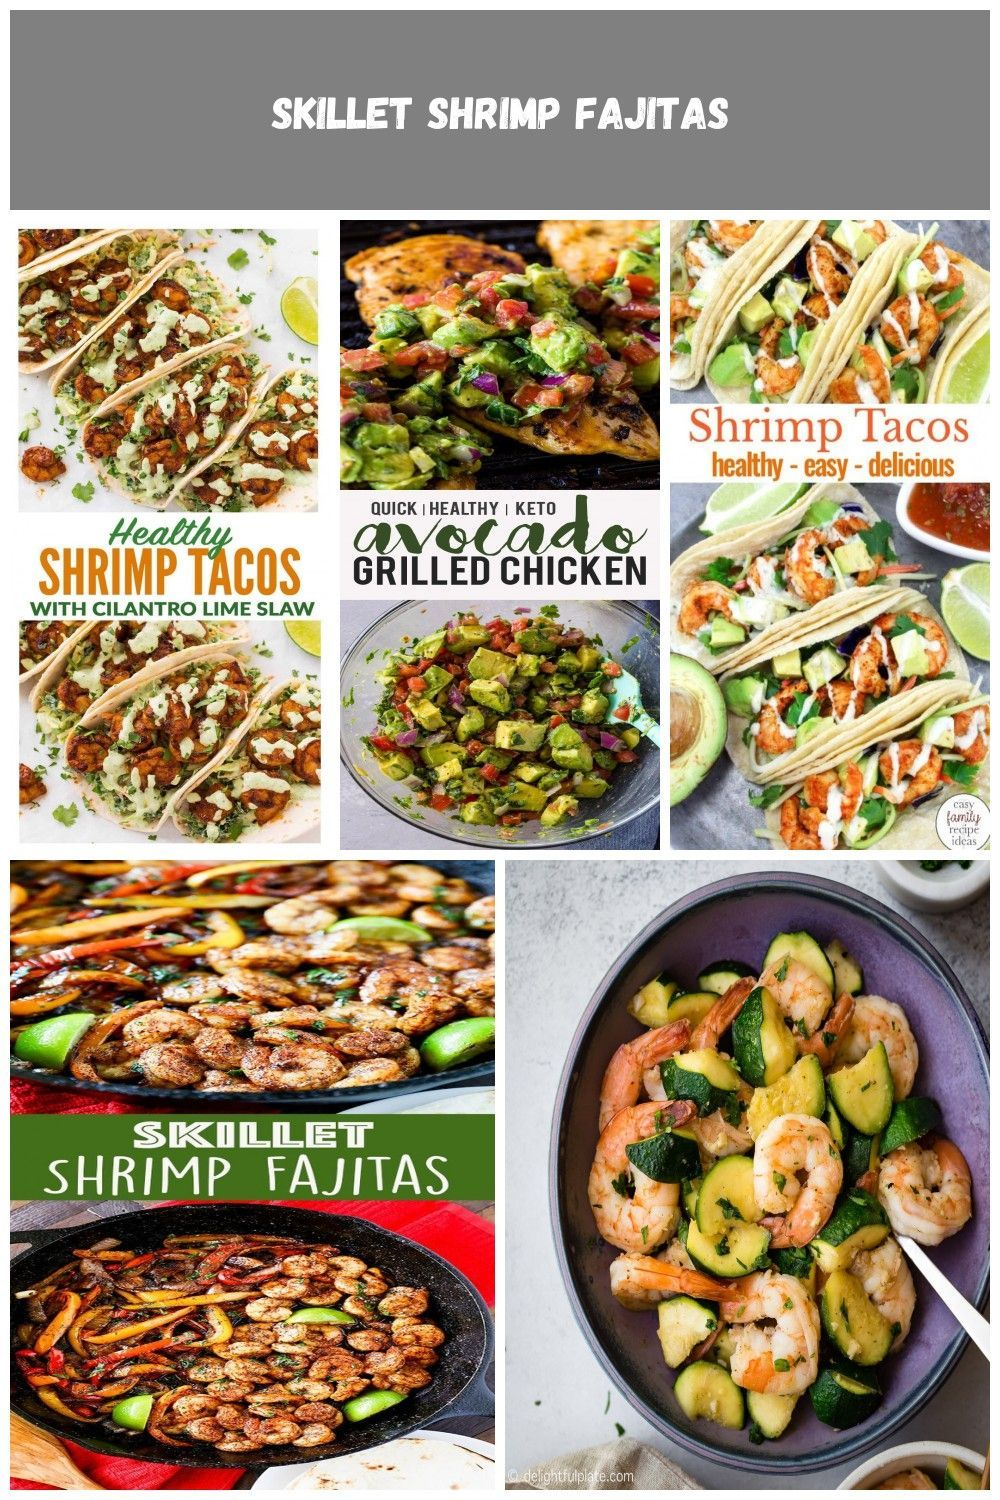 The BEST Healthy Shrimp Tacos with Cilantro Lime Sauce and Cabbage Slaw. Juicy, spicy, and so quick and easy! Cook on the stove or grill! #shrimptacos #healthy #easy via @wellplated shrimp healthy #cilantrolimeslaw The BEST Healthy Shrimp Tacos with Cilantro Lime Sauce and Cabbage Slaw. Juicy, spicy, and so quick and easy! Cook on the stove or grill! #shrimptacos #healthy #easy via @wellplated shrimp healthy #cilantrolimeslaw